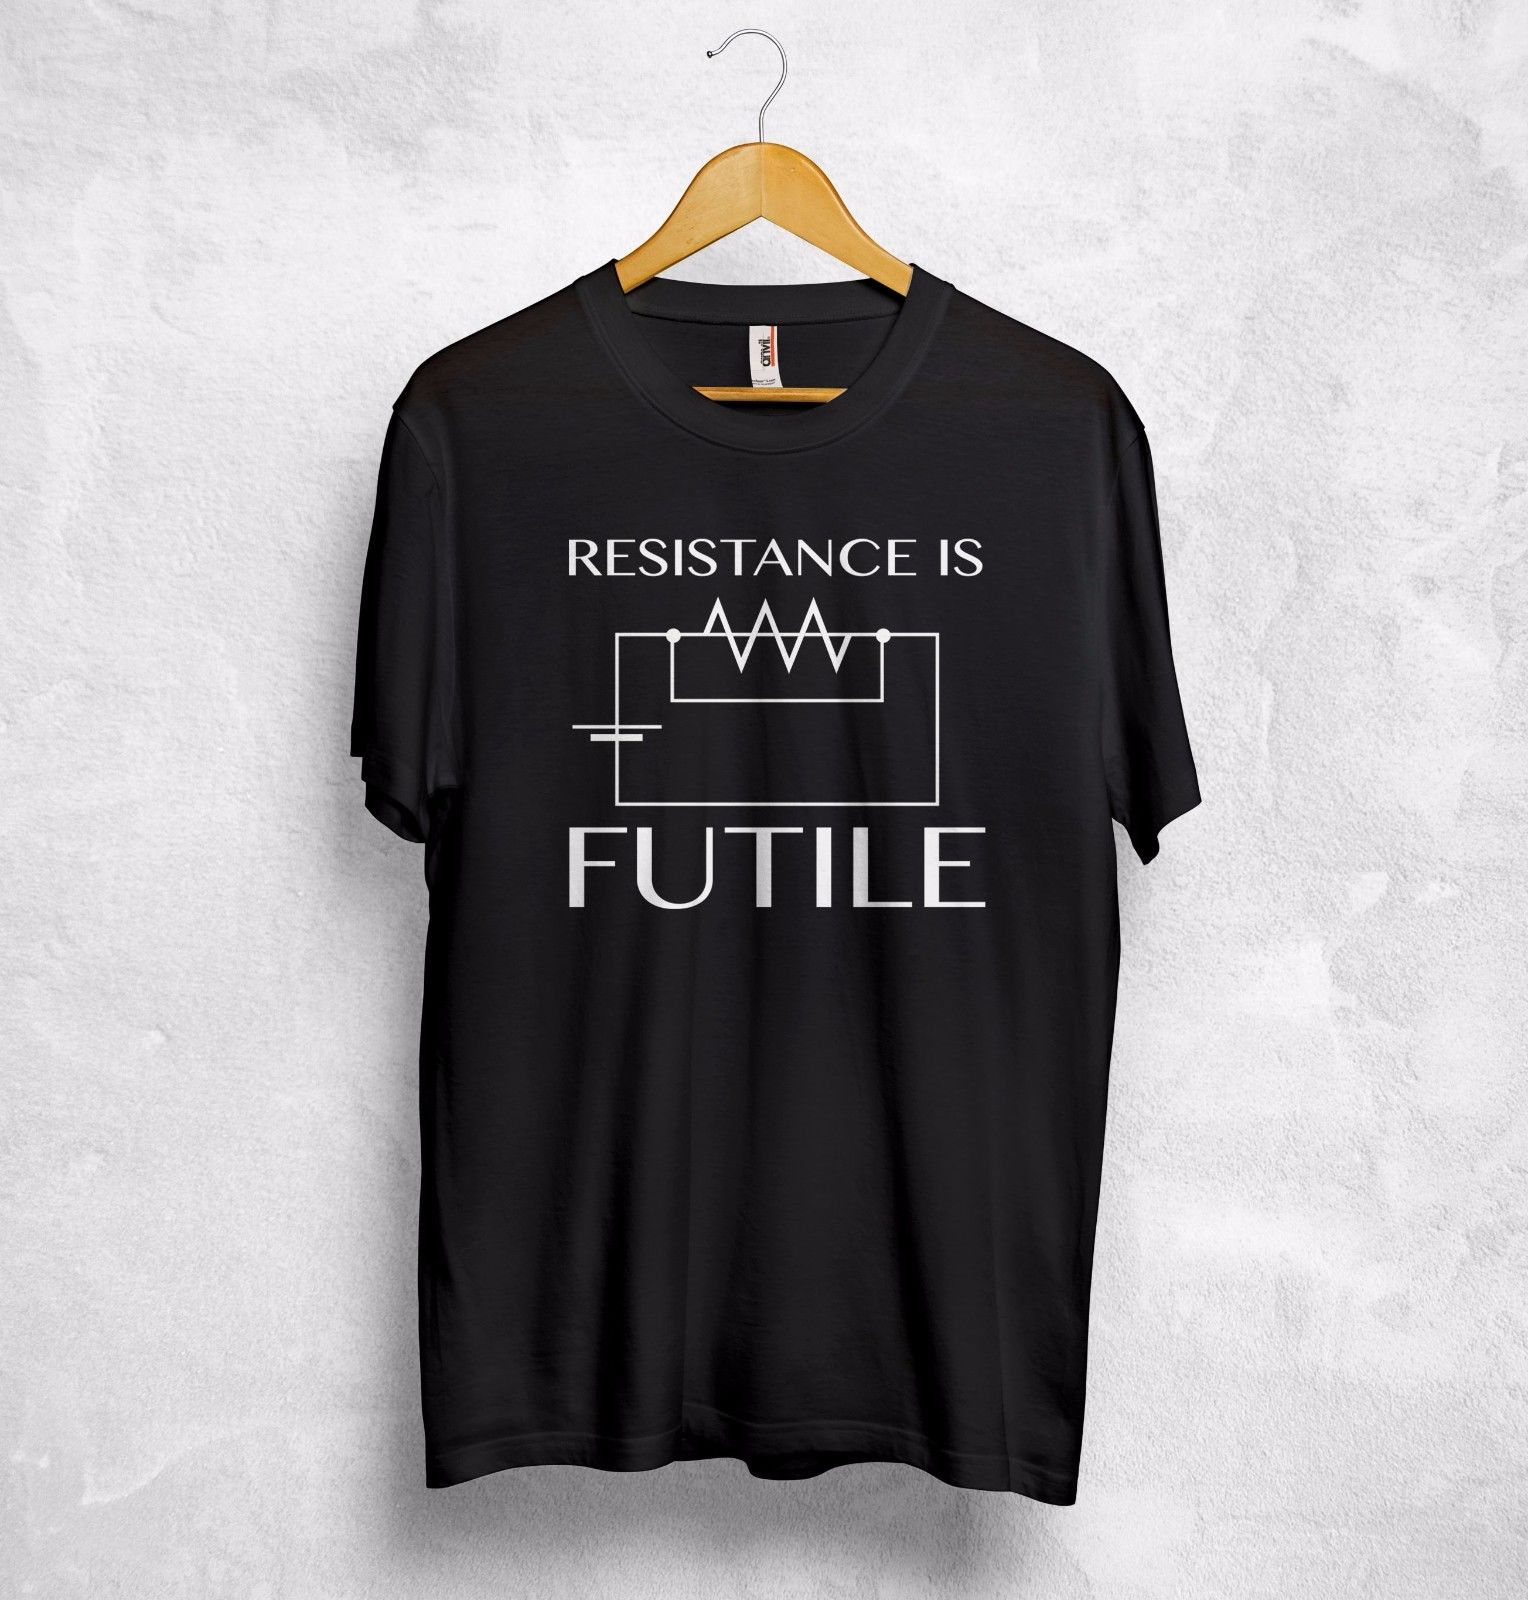 Resistance Is Futile T Shirt Top Electrotechnics Electrician Electronic Ohms Law Men Summer Short Sleeves Casual T-Shirt